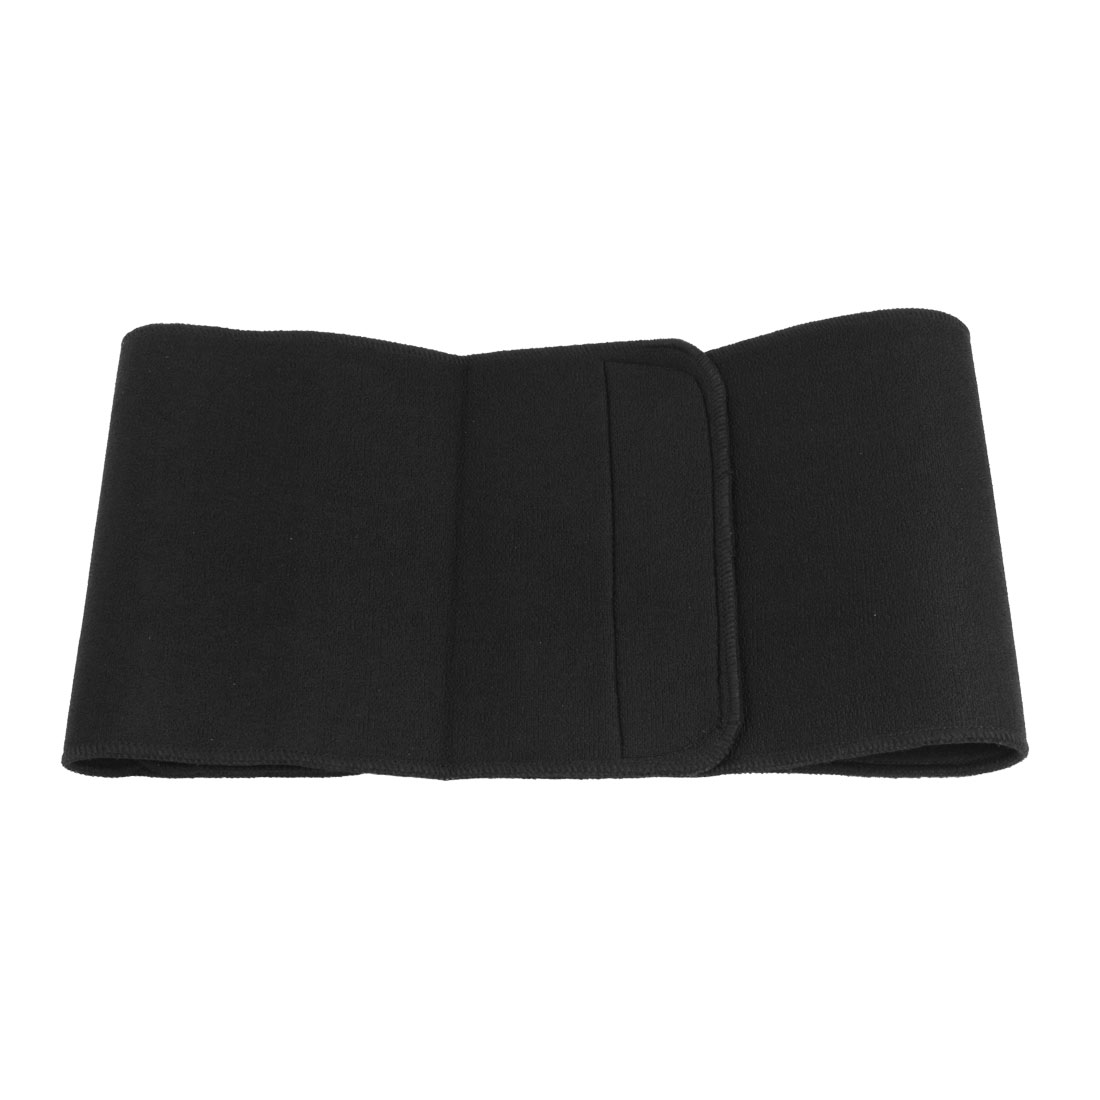 Compressive Neoprene Waist Support Brace Belt Black